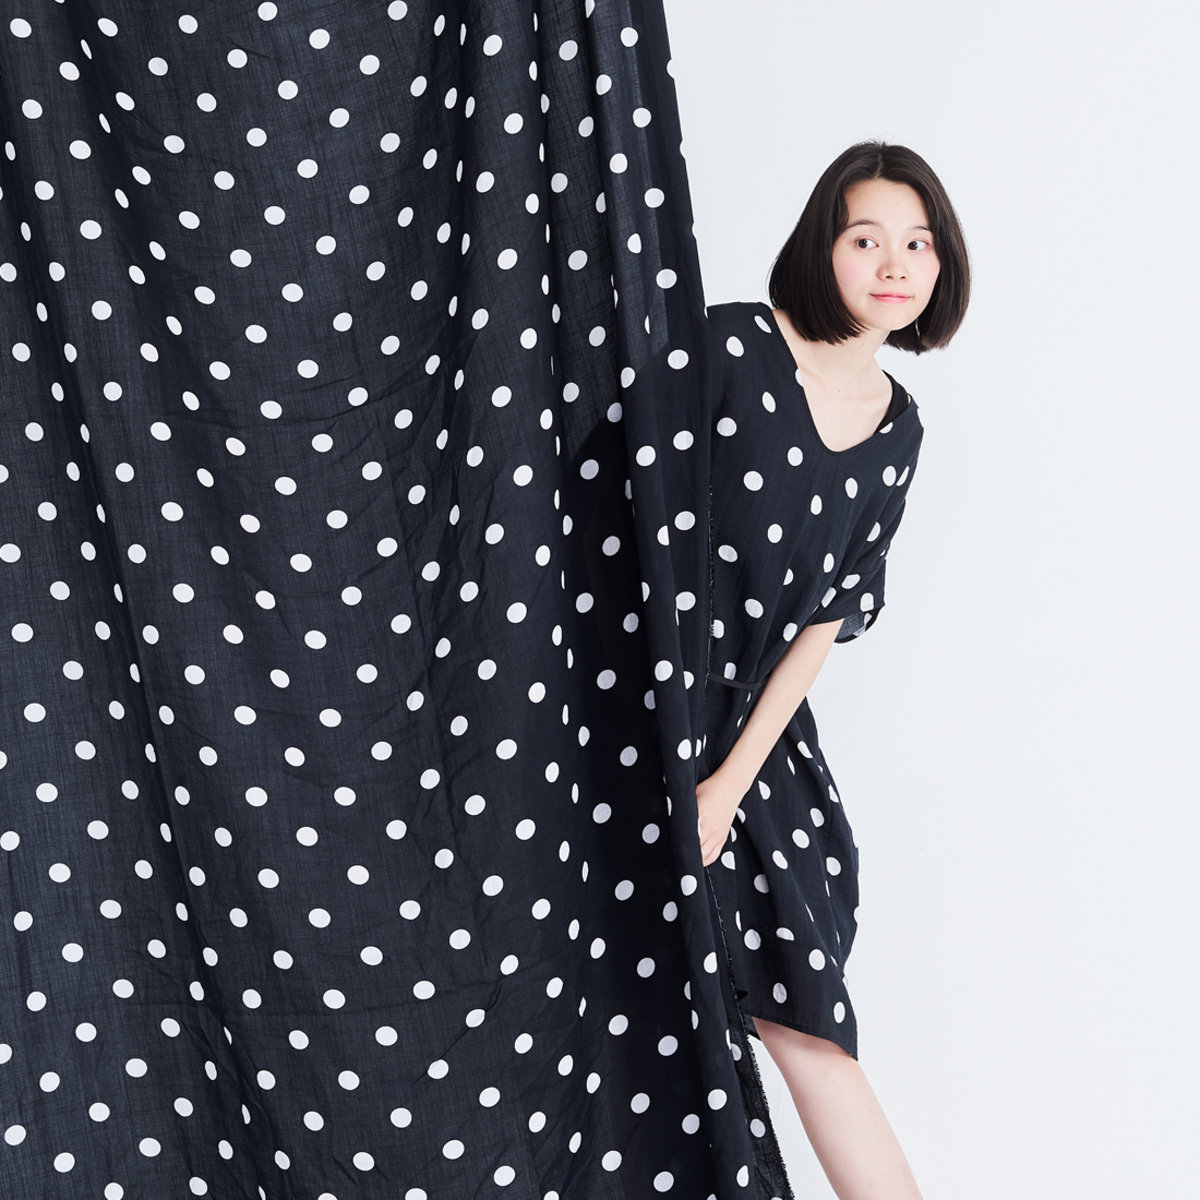 Bubble V neck Adjustable drawstring Relaxed fit dress Black with white dots